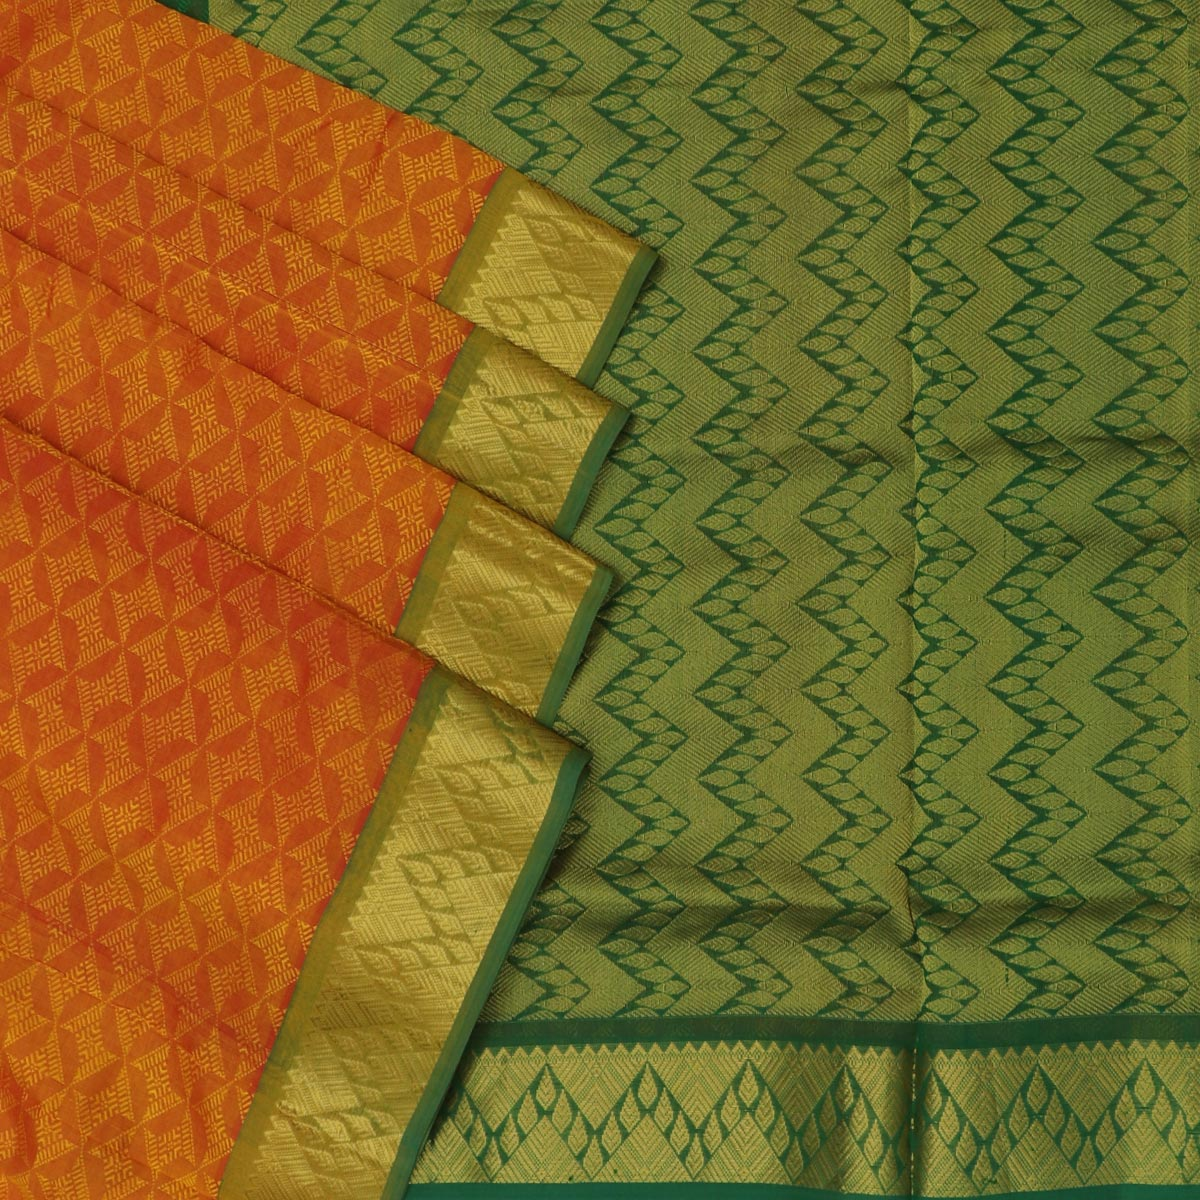 Silk Cotton Saree - Mango yellow and Green with Temple border 9 yards